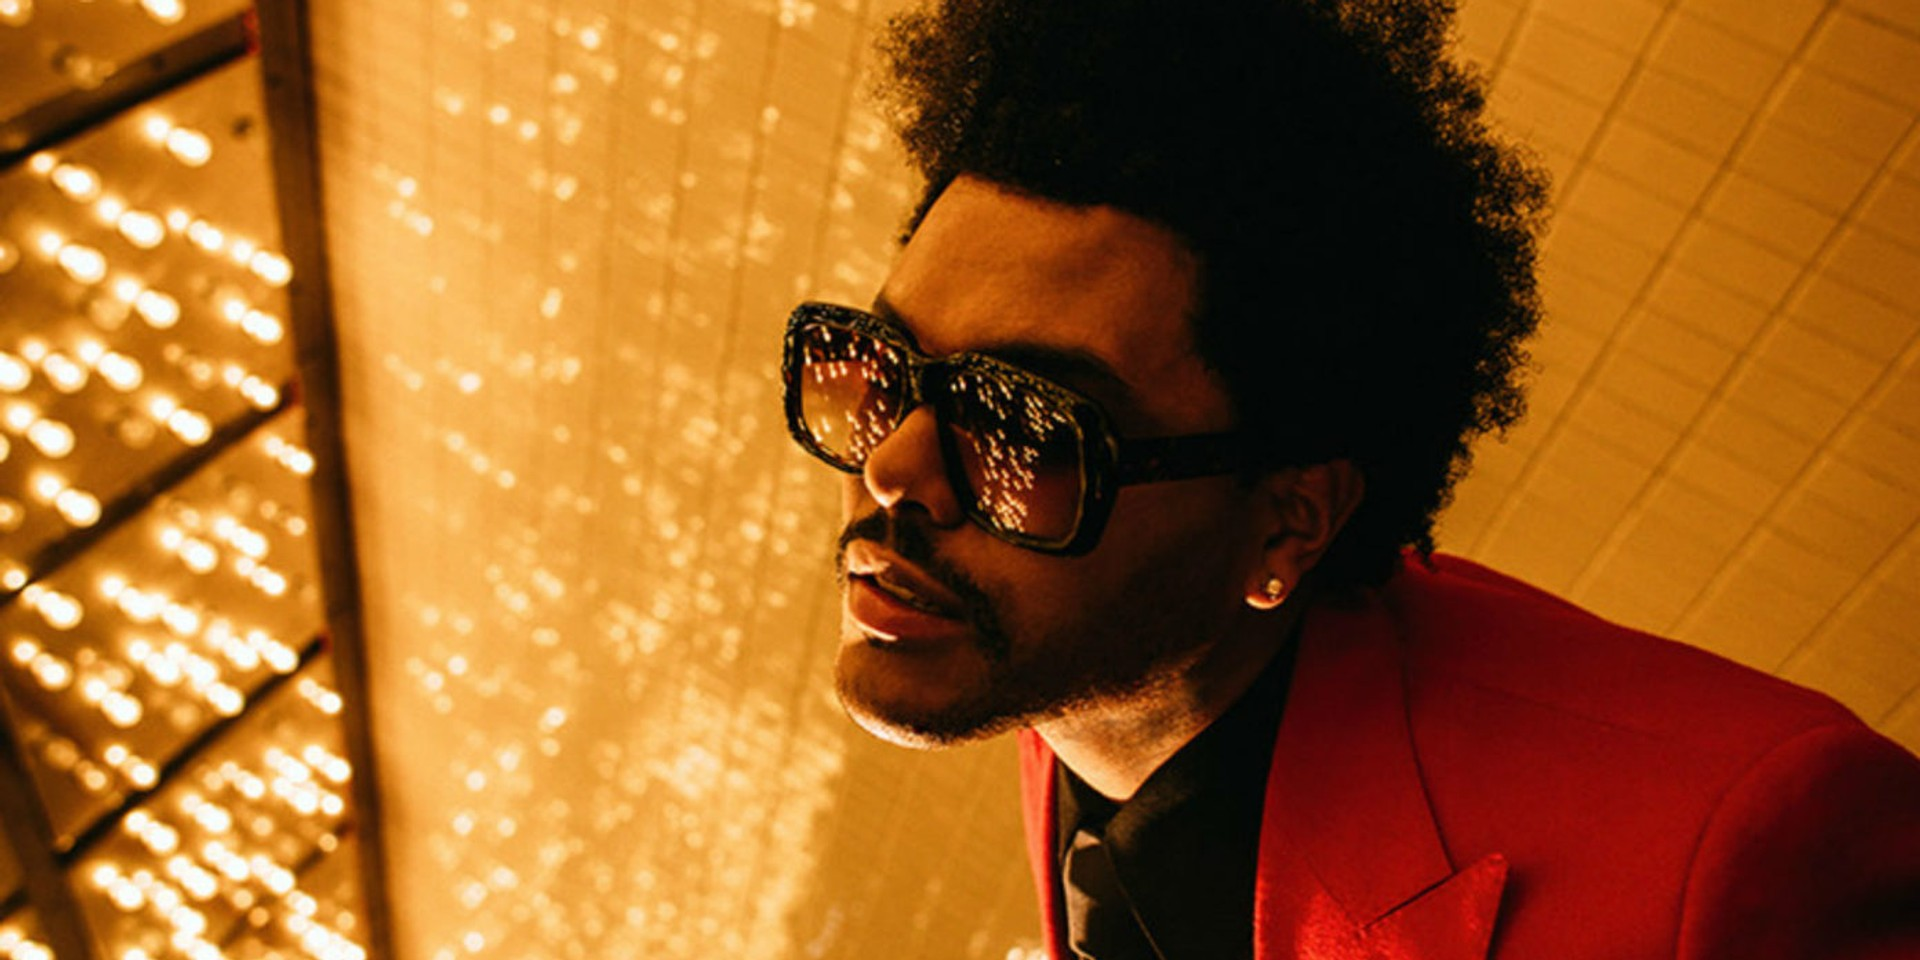 """The Weeknd speaks out against the Grammy Awards after nomination shutout: """"You owe me, my fans, and the industry transparency..."""""""